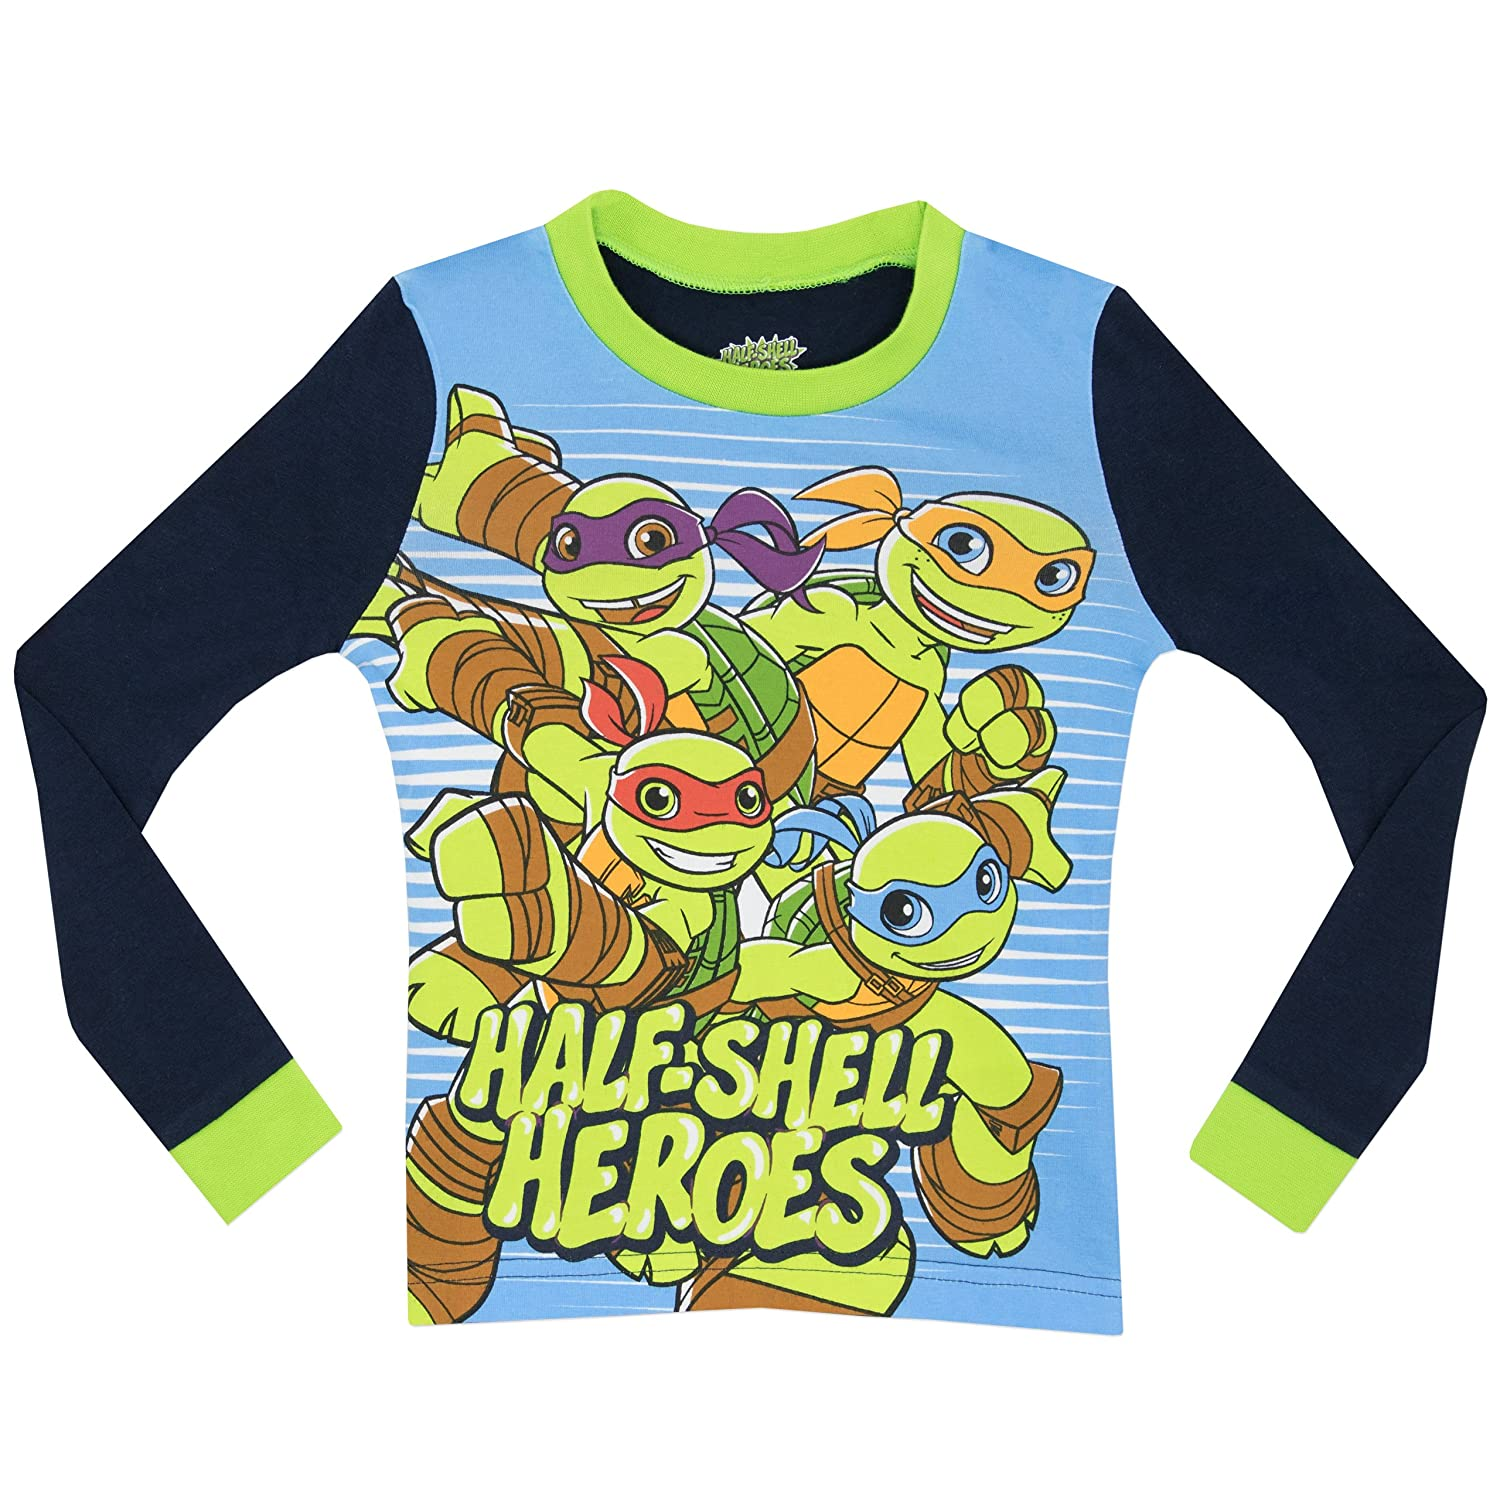 016c04eb65 Teenage Mutant Ninja Turtles Jungen Half Shell Heroes Schlafanzug - Slim  Fit: Amazon.de: Bekleidung